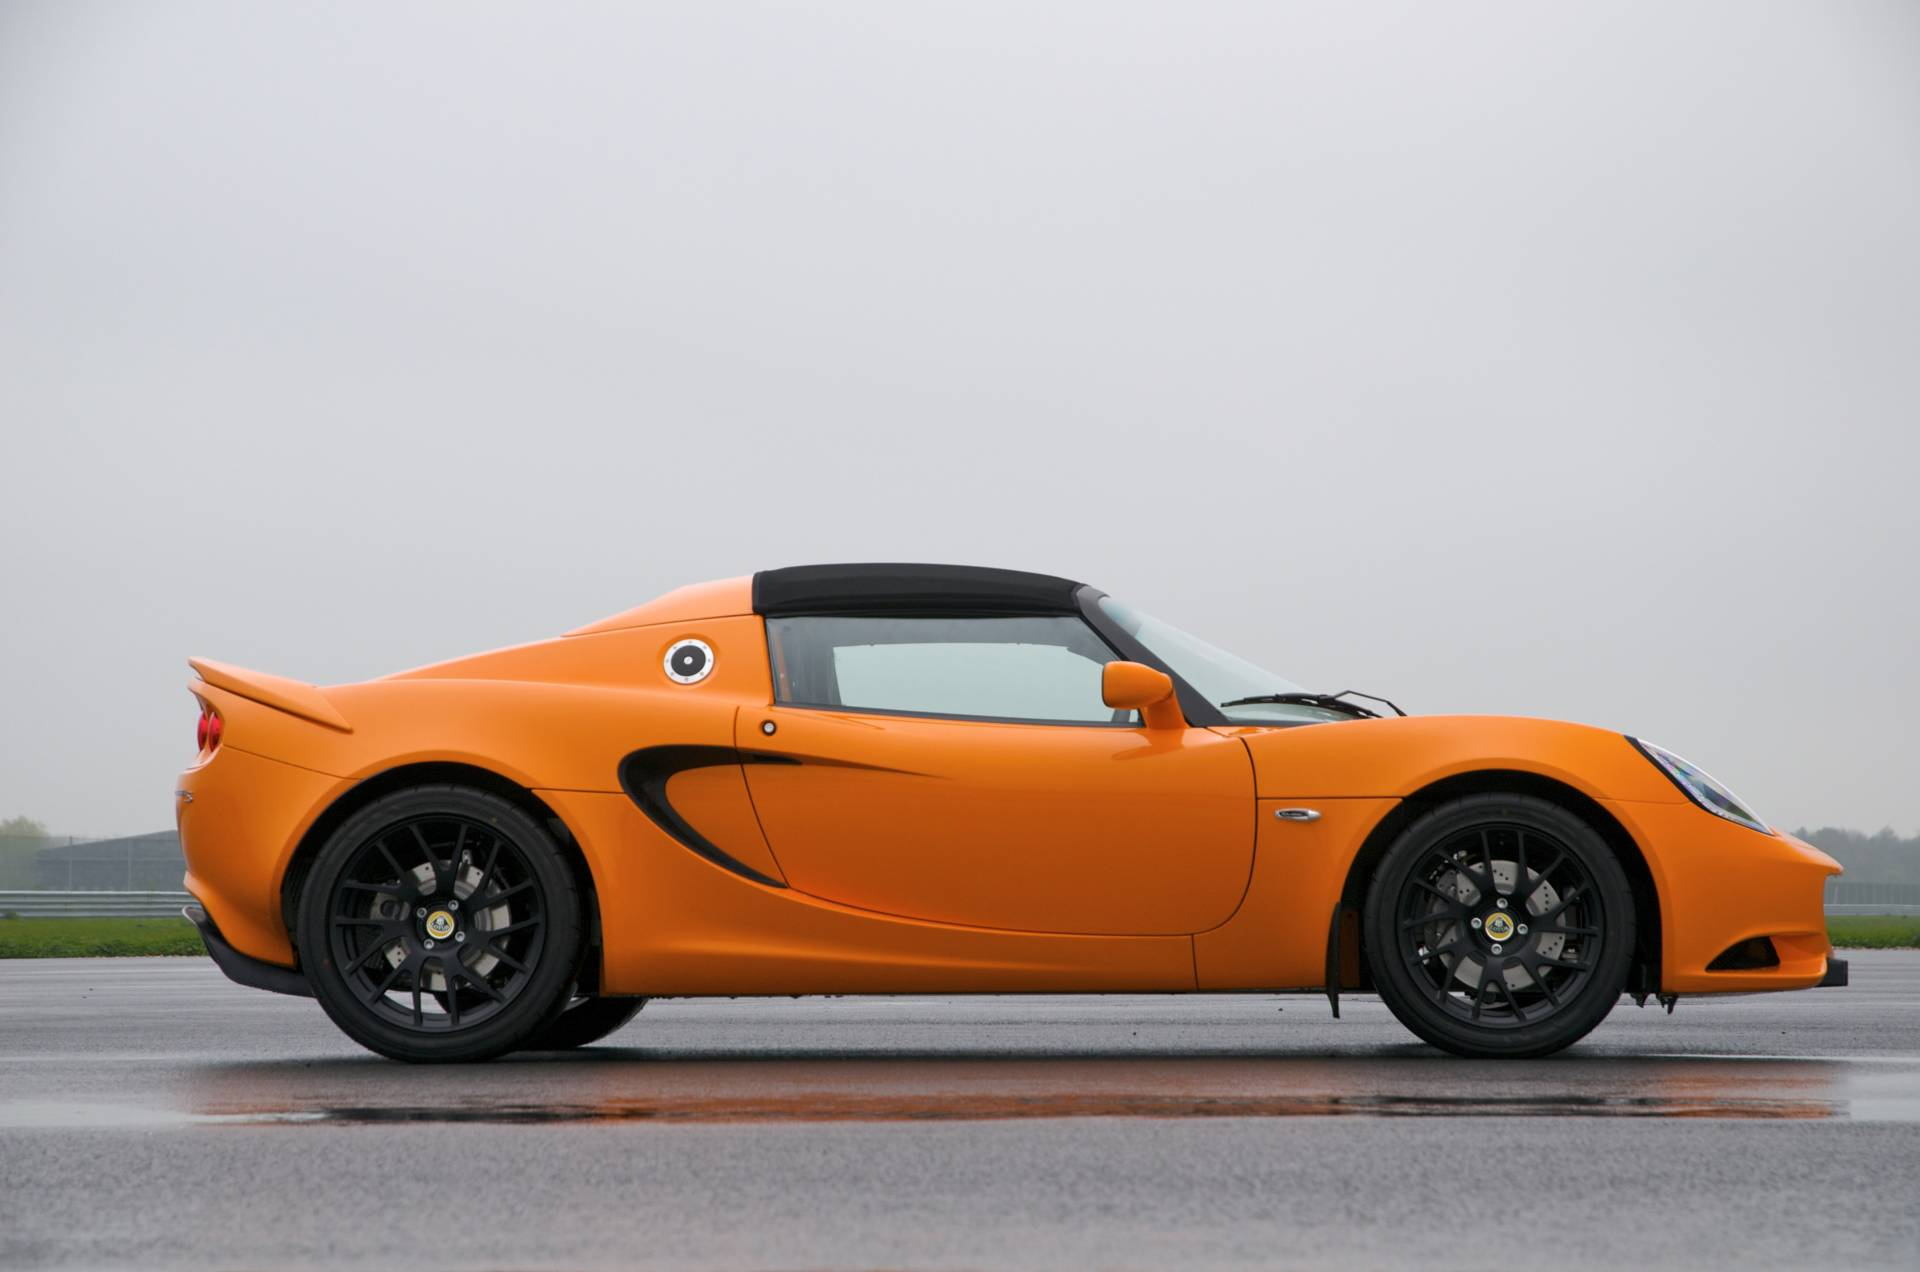 Future Cars 2018 Wallpapers 2013 Lotus Elise News And Information Conceptcarz Com